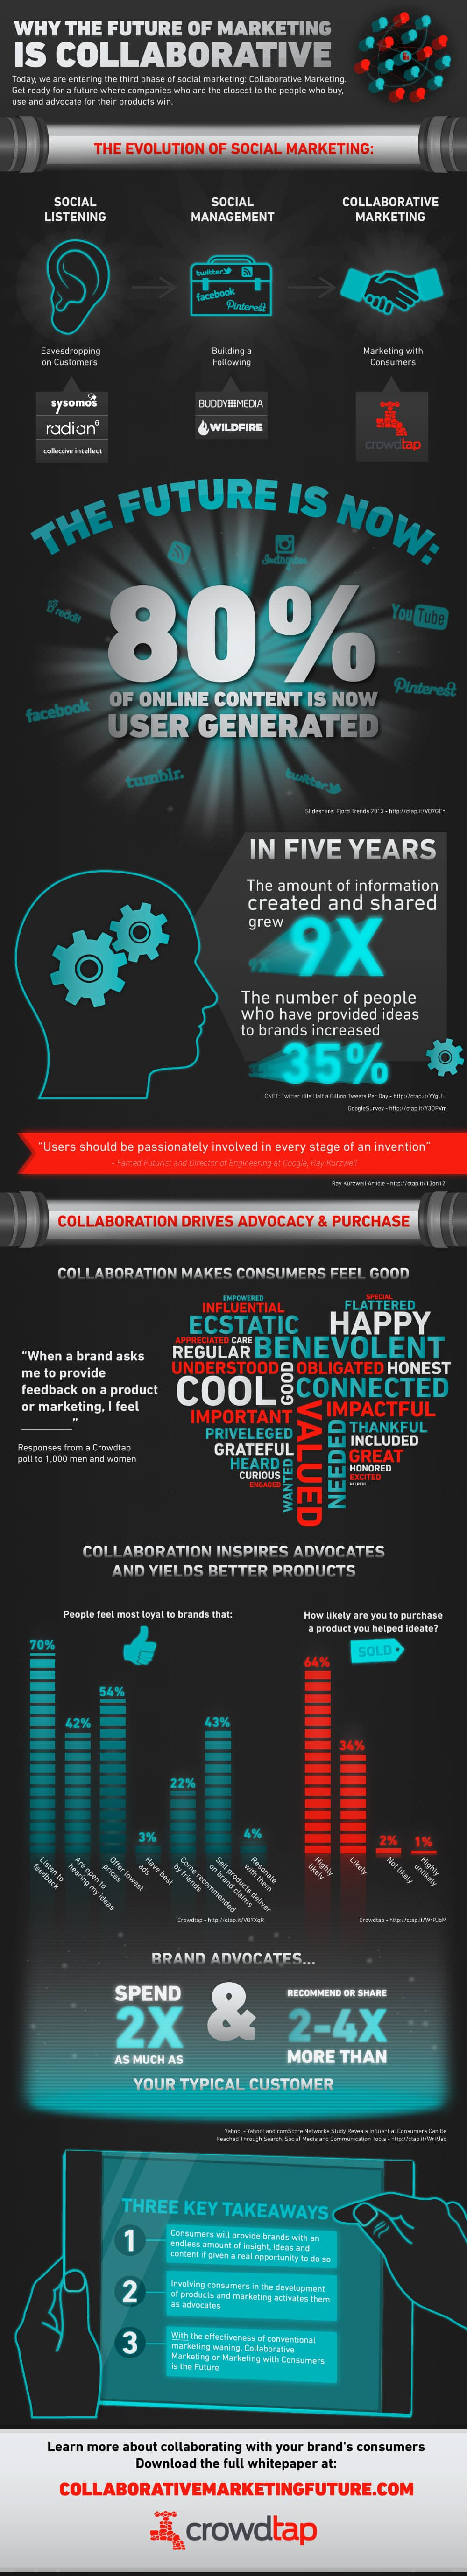 2013-04-03-The_Future_of_Marketing_Infographic_March_20131